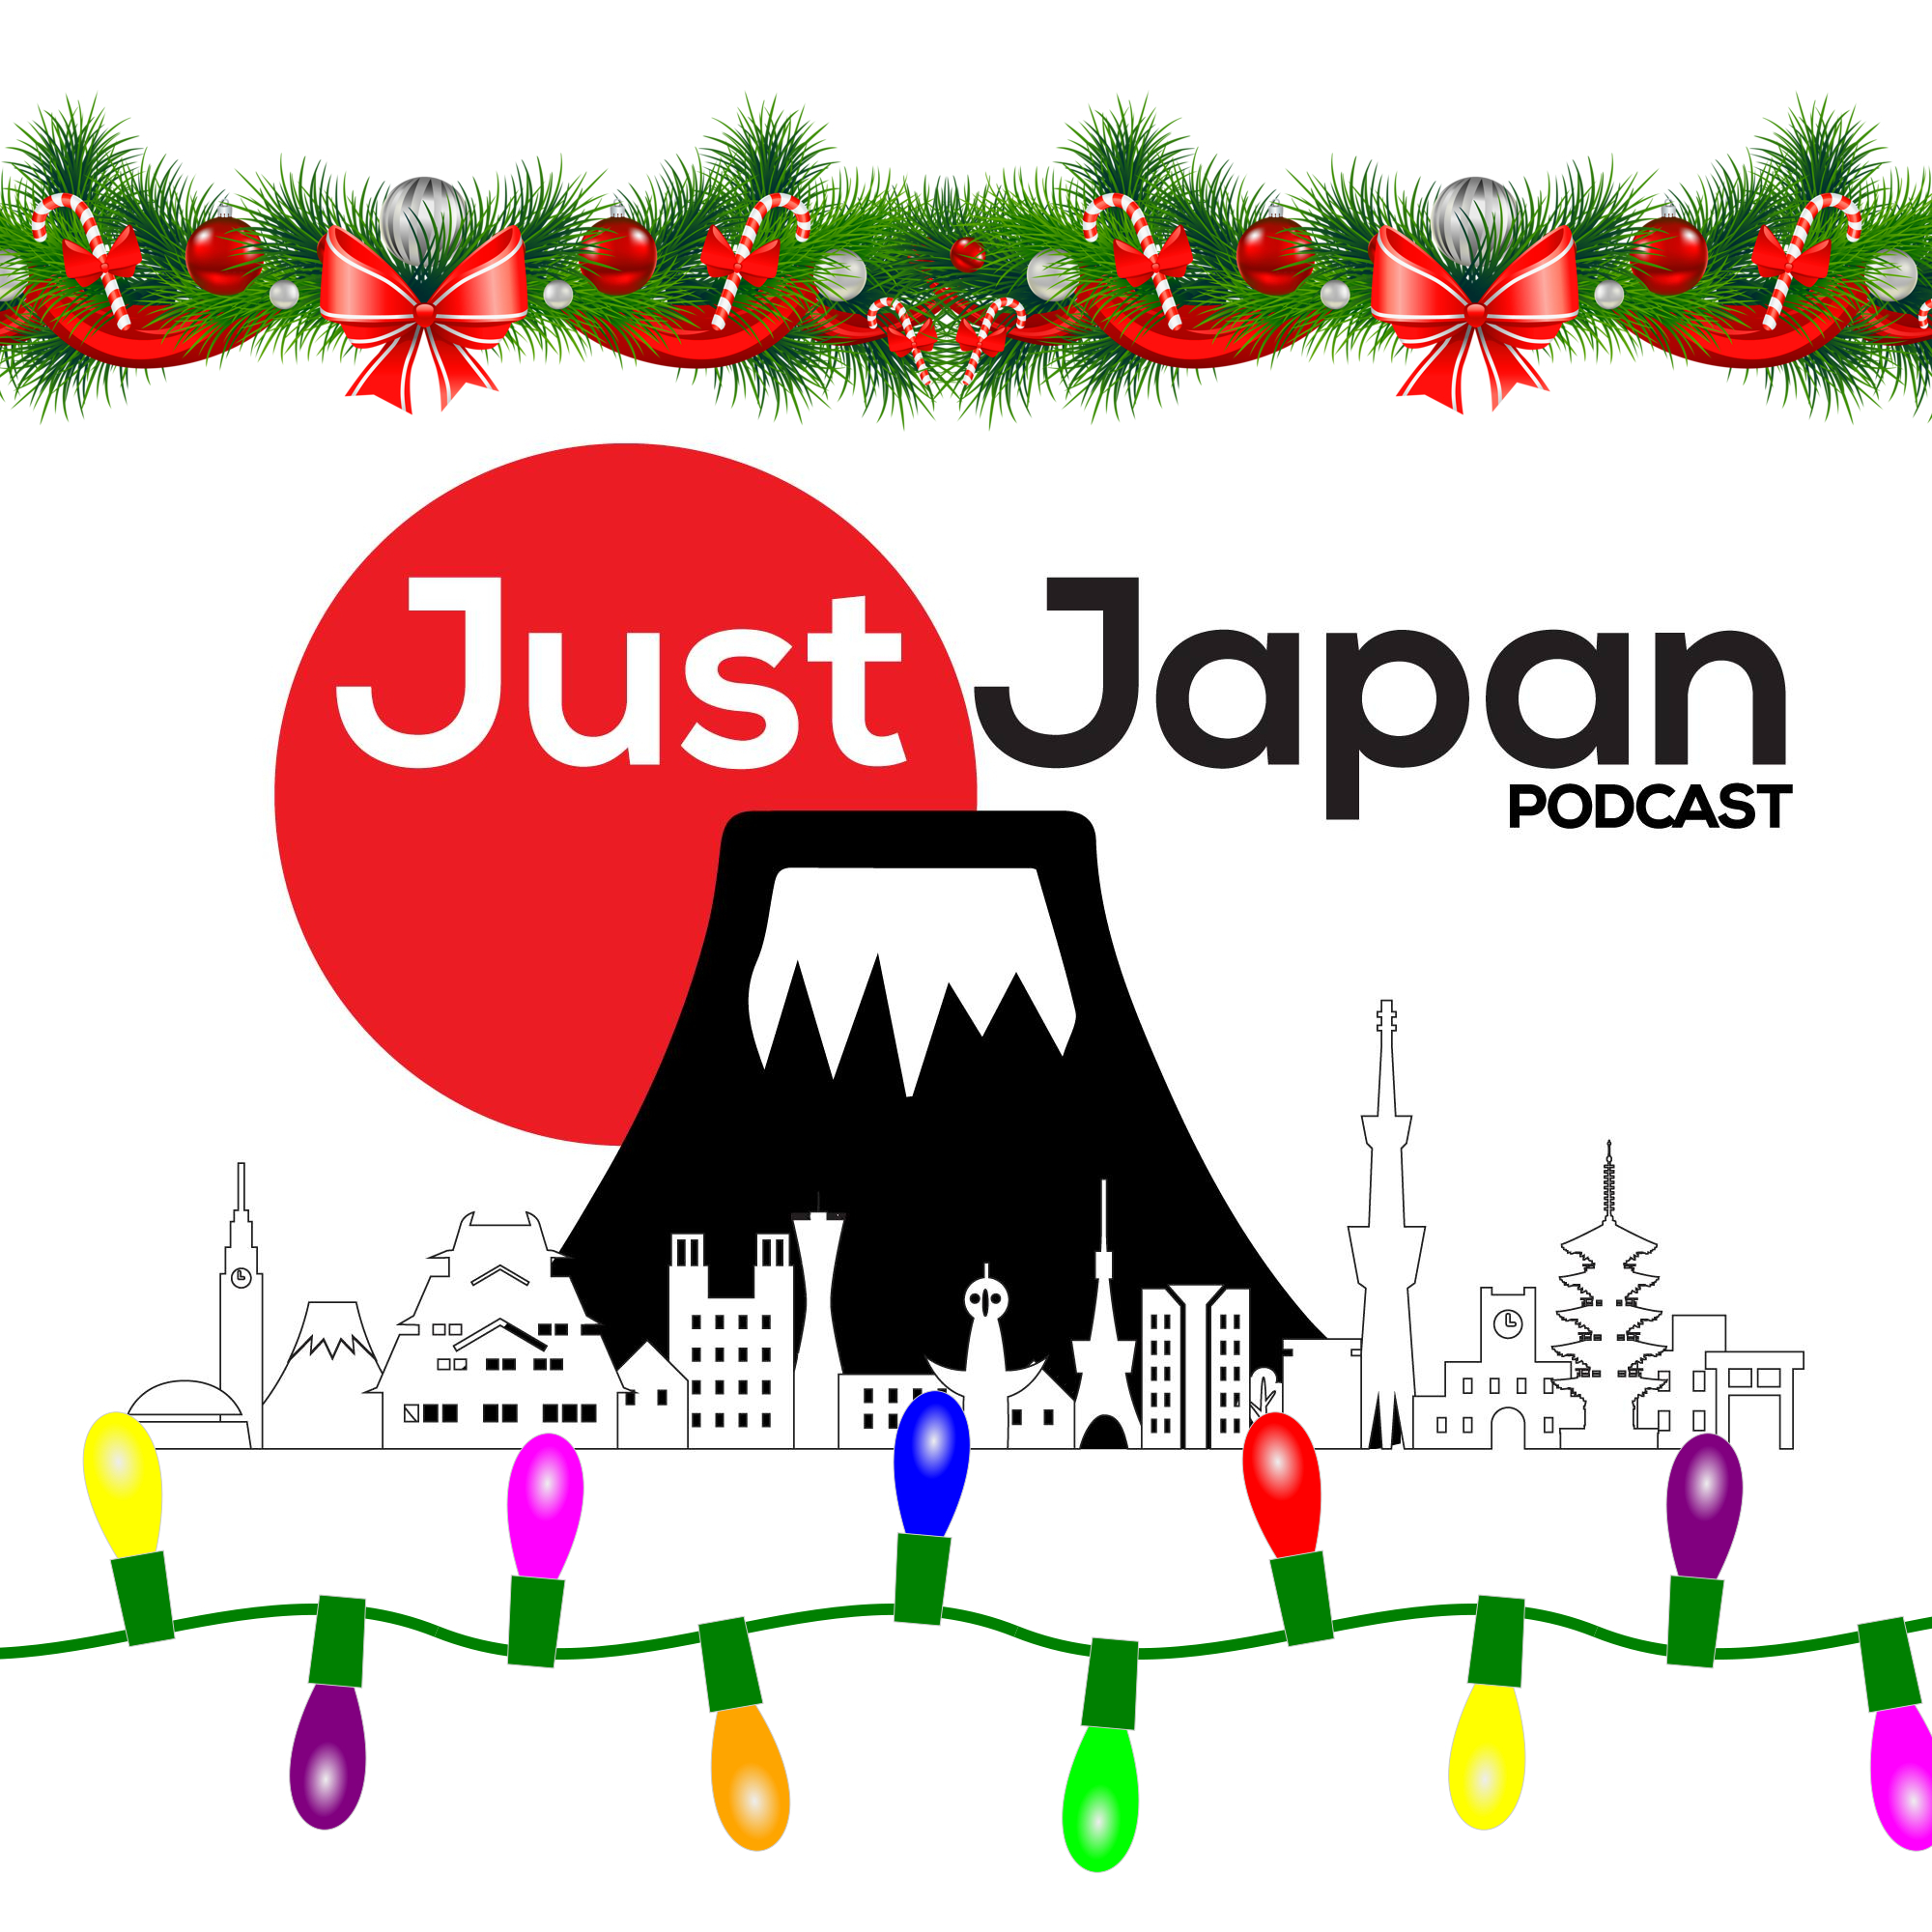 Just Japan Podcast 137: Christmas and bi-cultural families